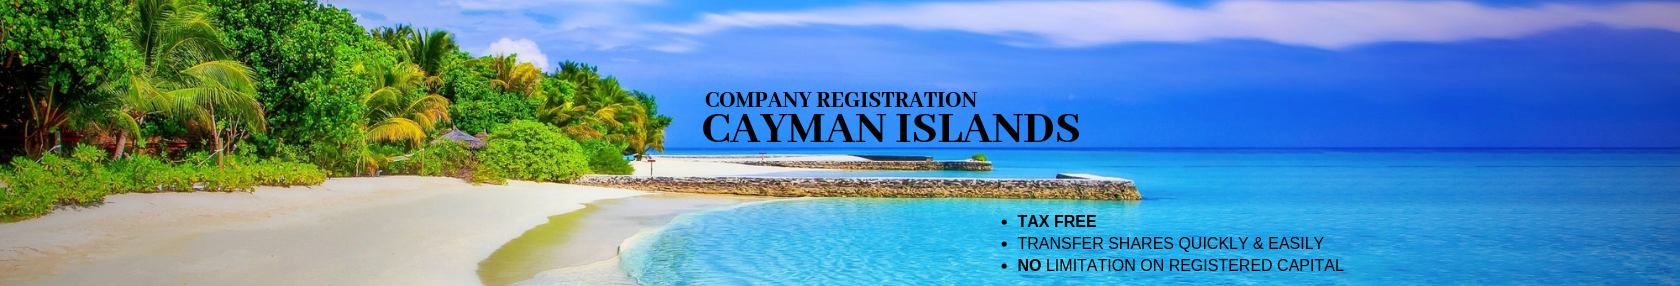 Cayman Islands, Offshore Company Registration